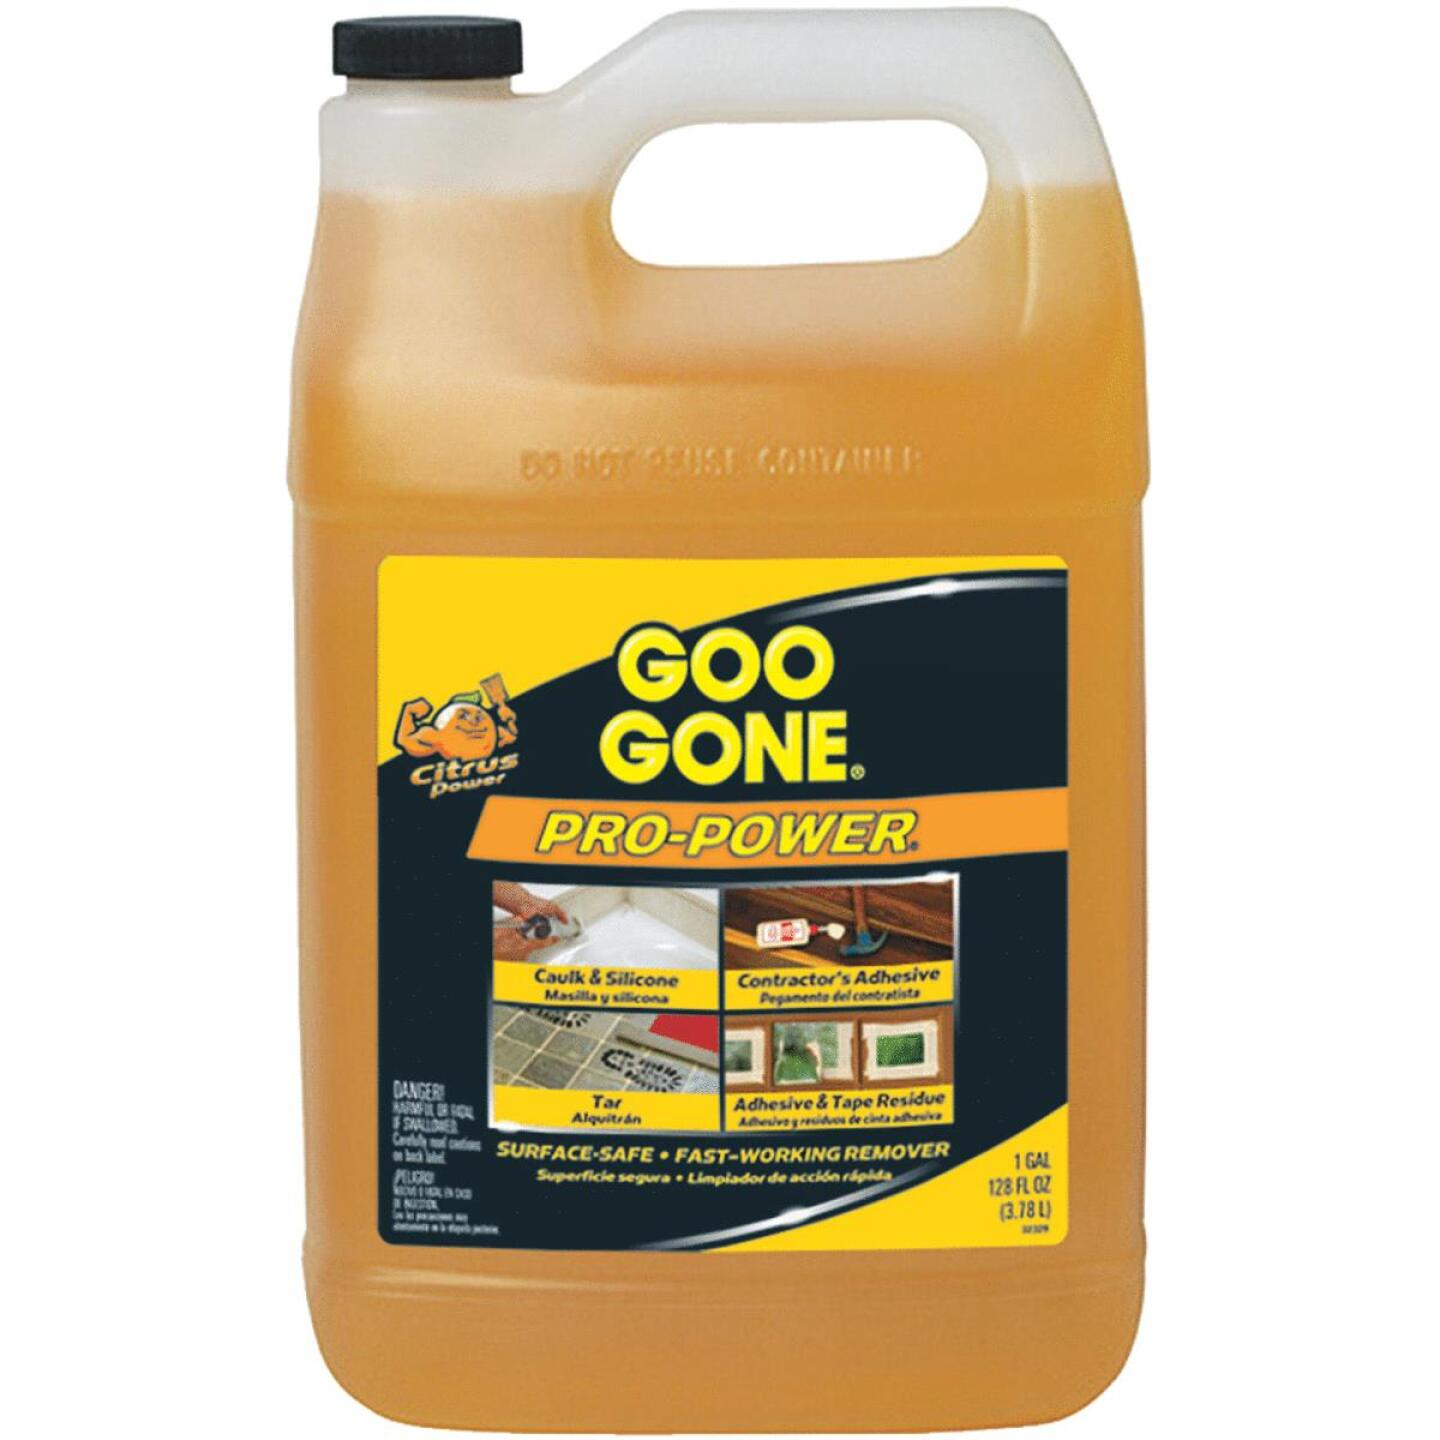 Goo Gone 1 Gal. Pro-Power Adhesive Remover Image 256